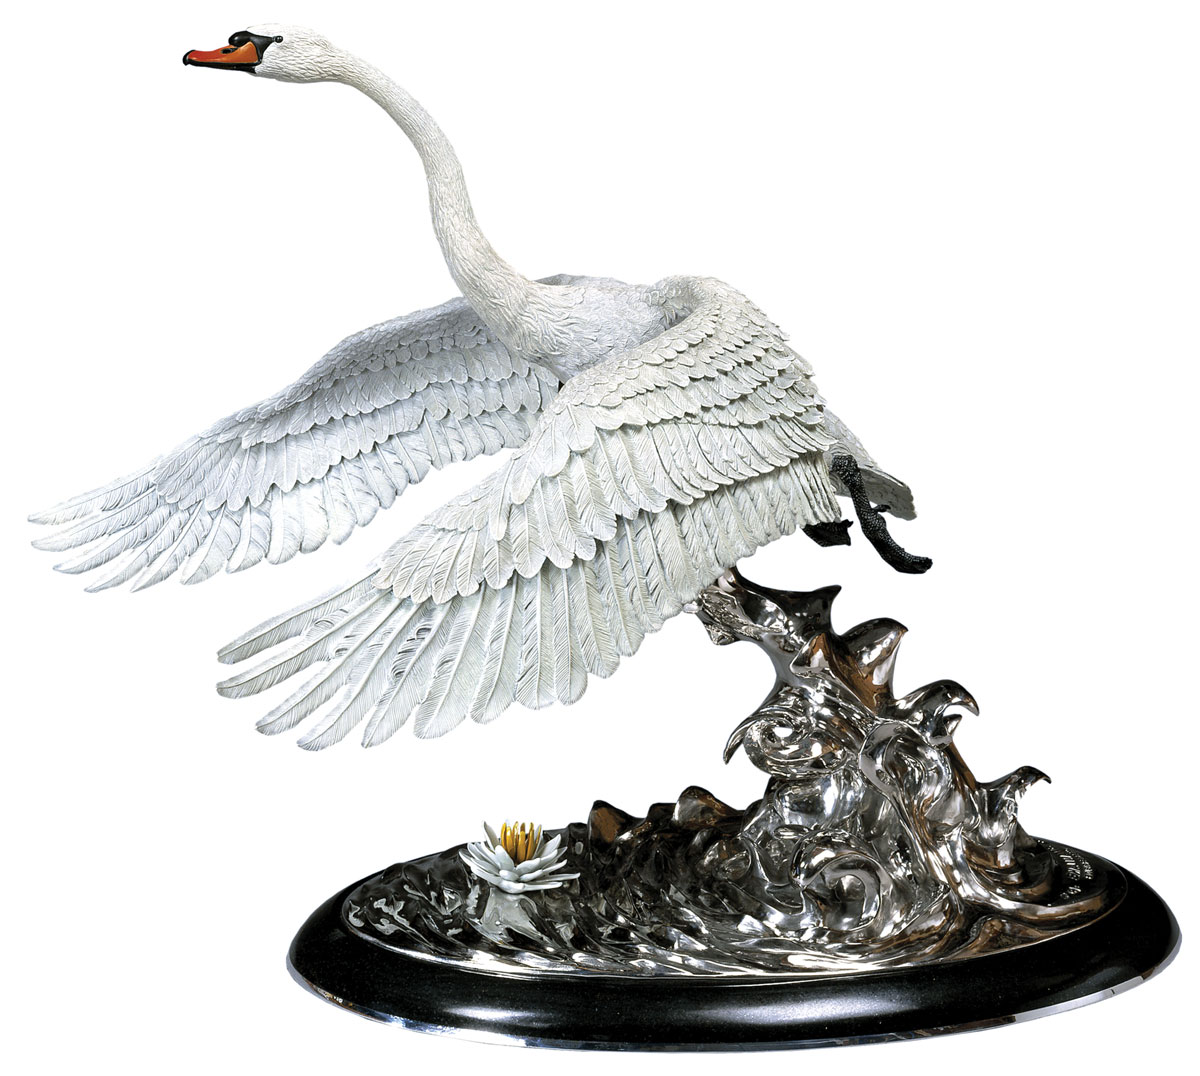 Elegance"